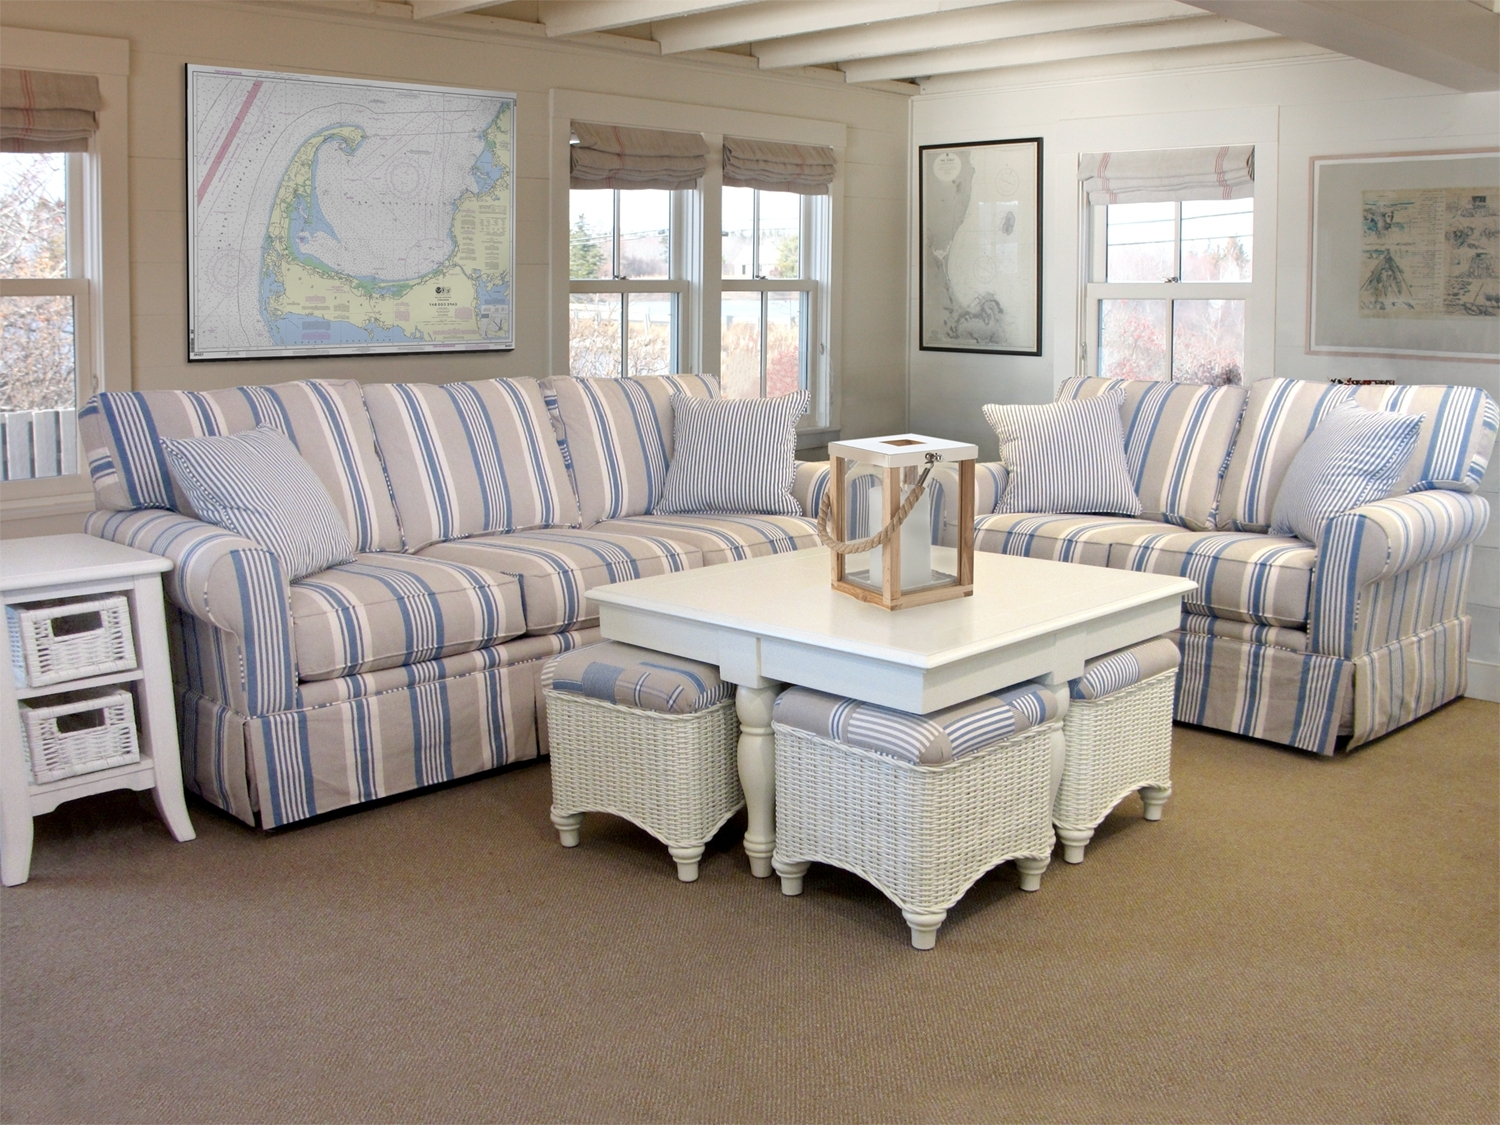 Barbos Furniture Intended For Well Known Striped Sofas And Chairs (View 3 of 20)